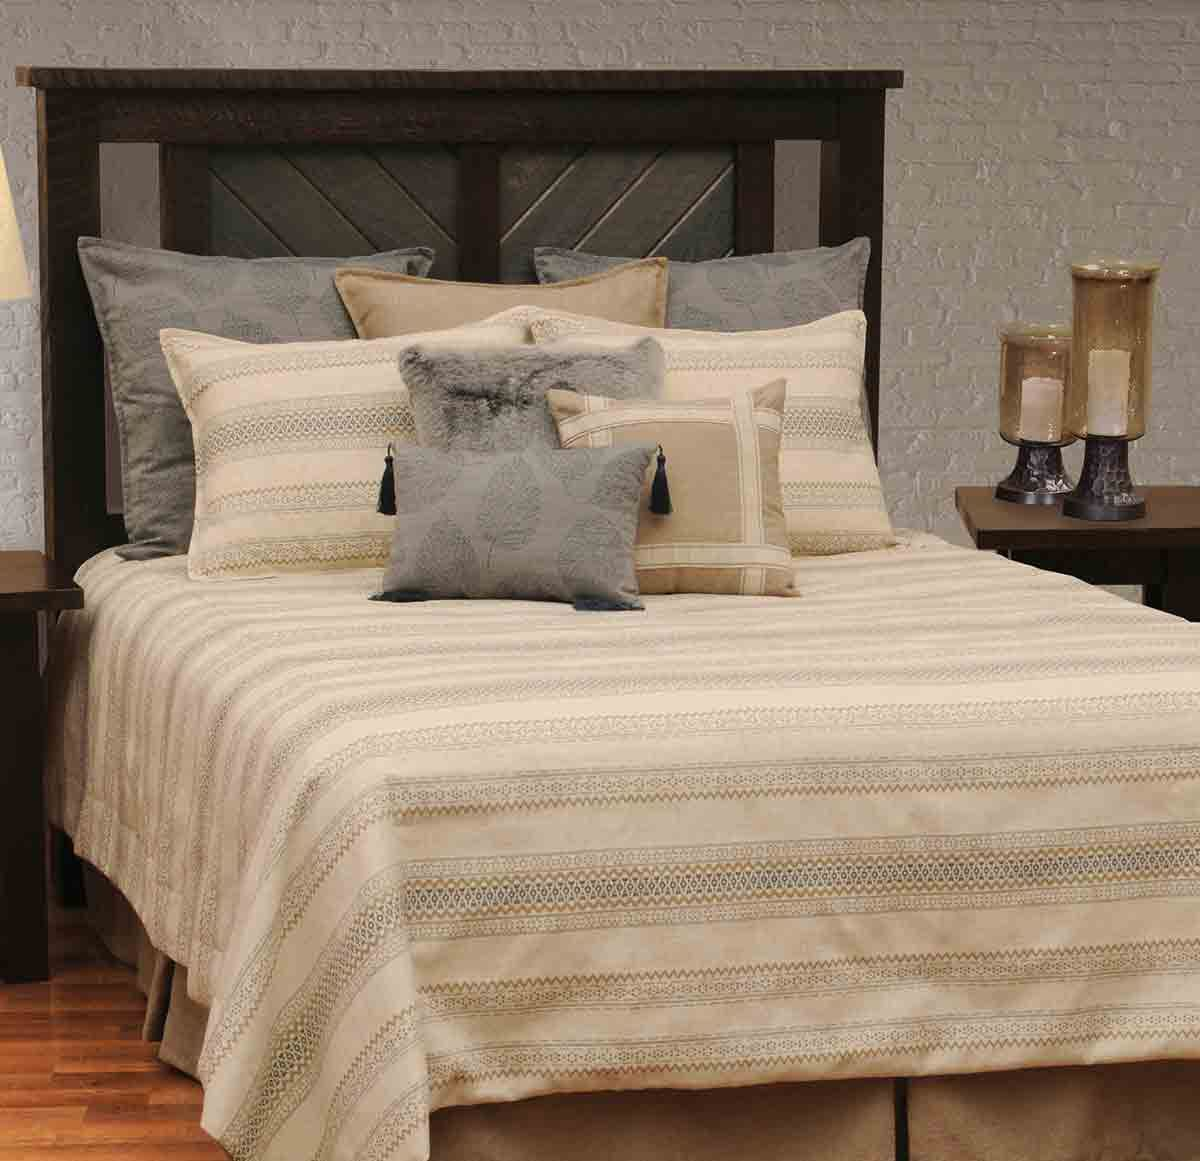 Ava Deluxe Bed Set - Cal King